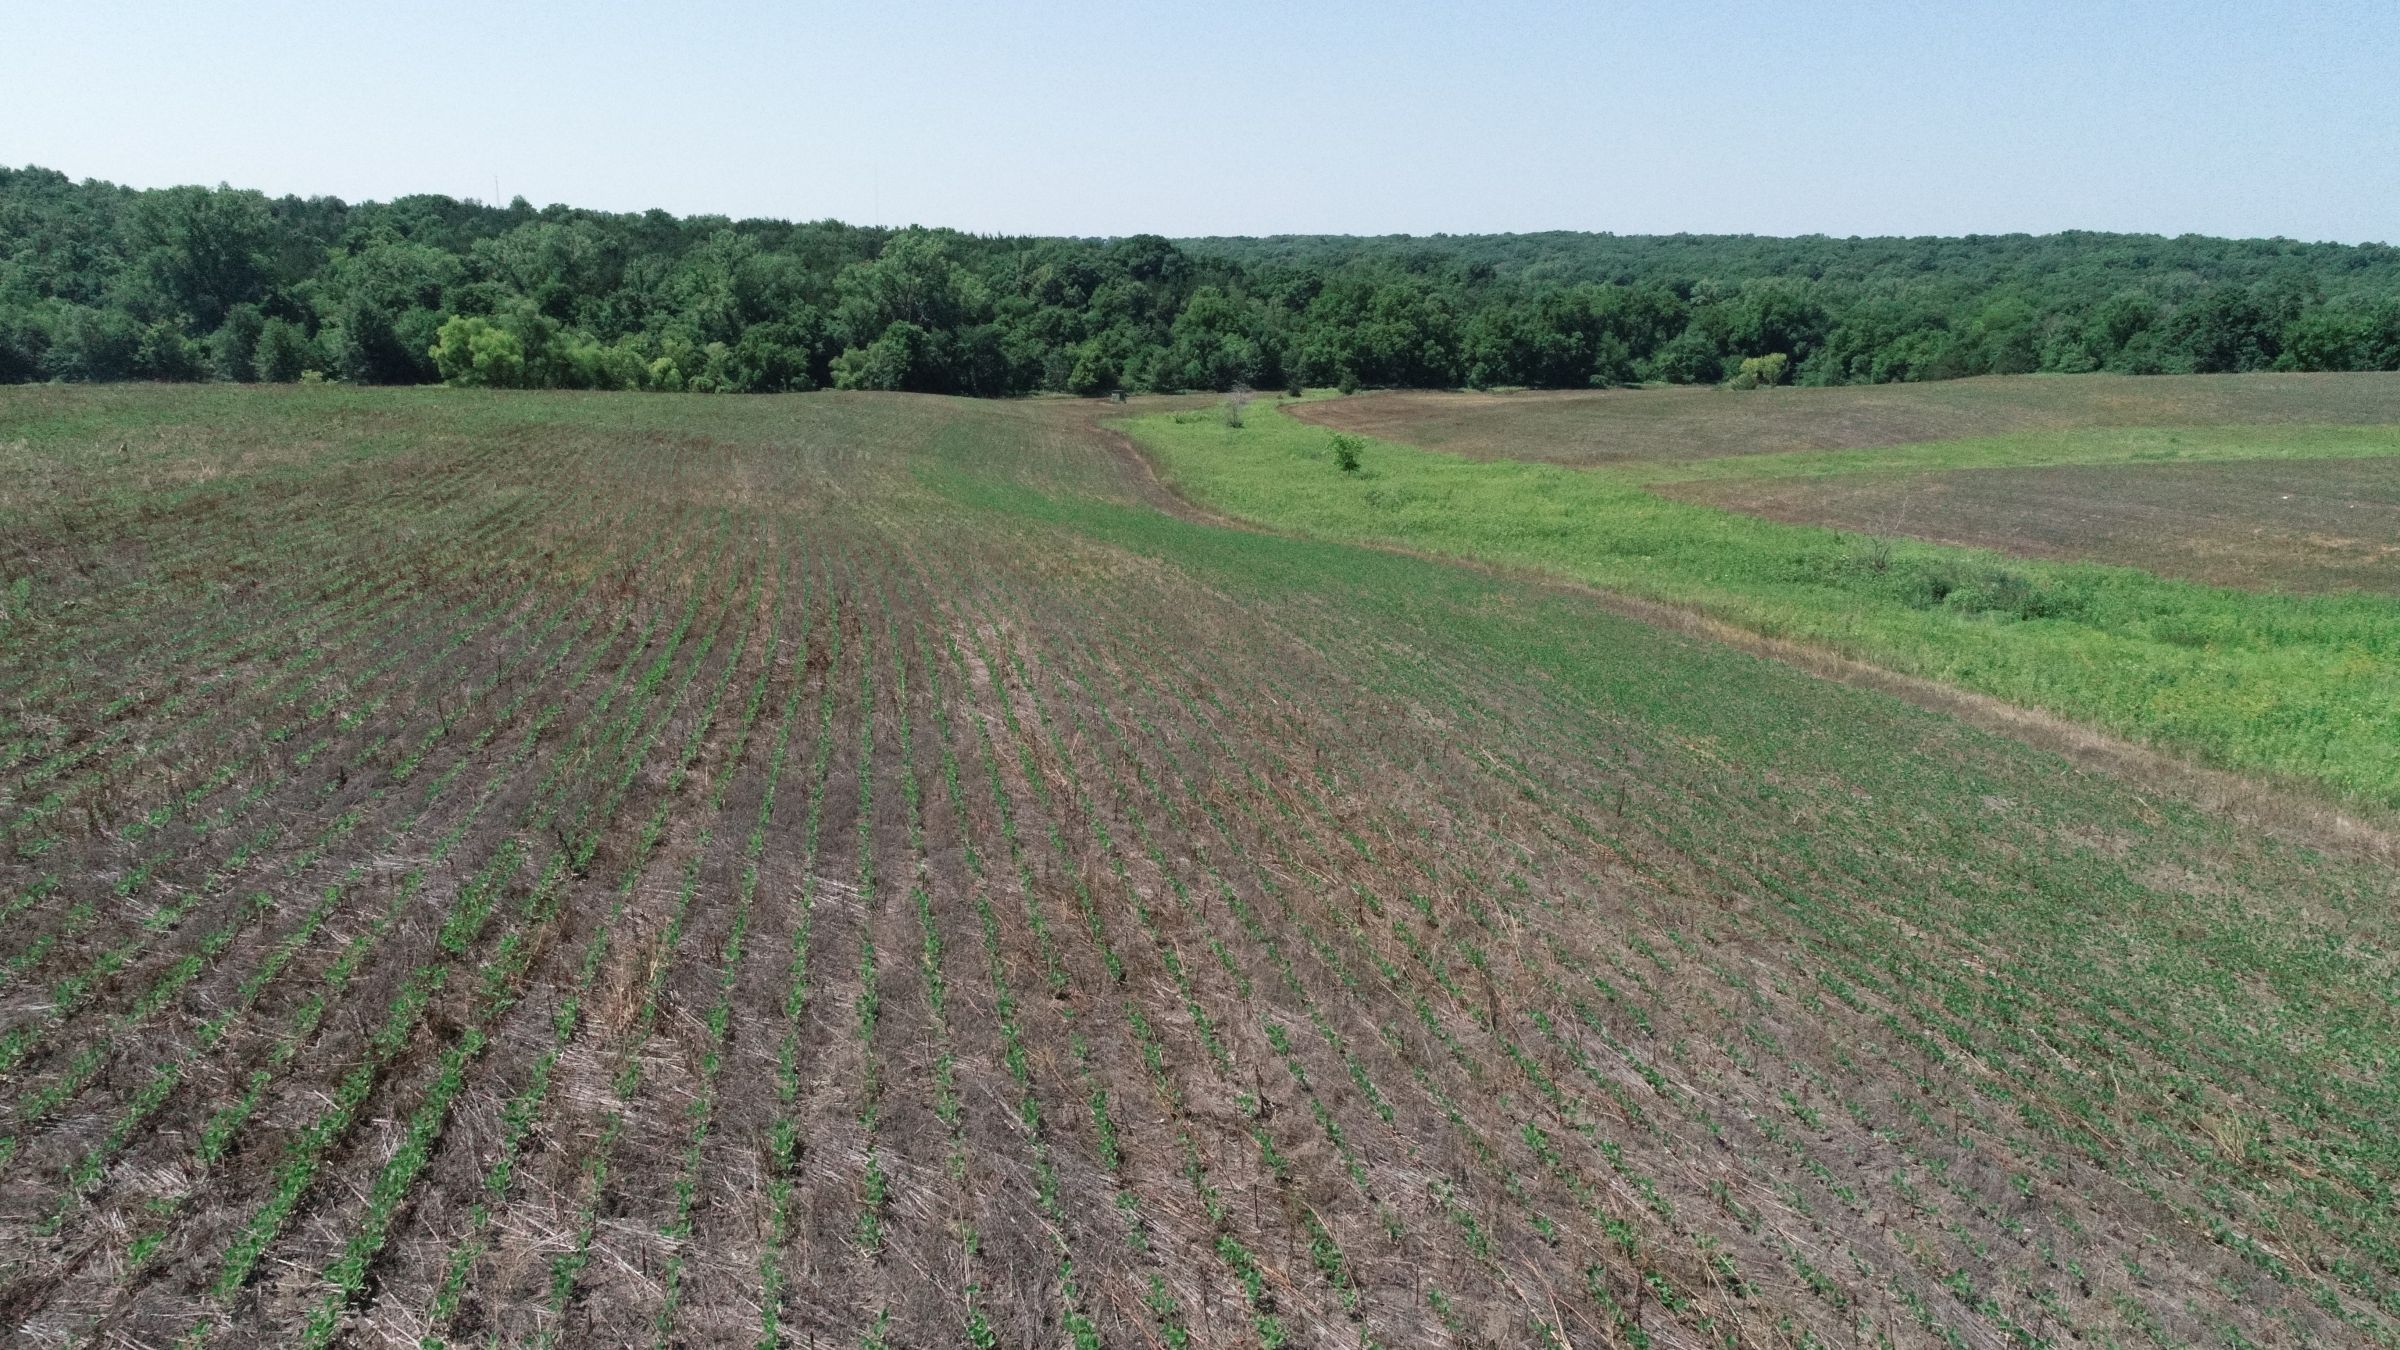 land-decatur-county-iowa-40-acres-listing-number-15069-4-2020-07-13-190430.JPG